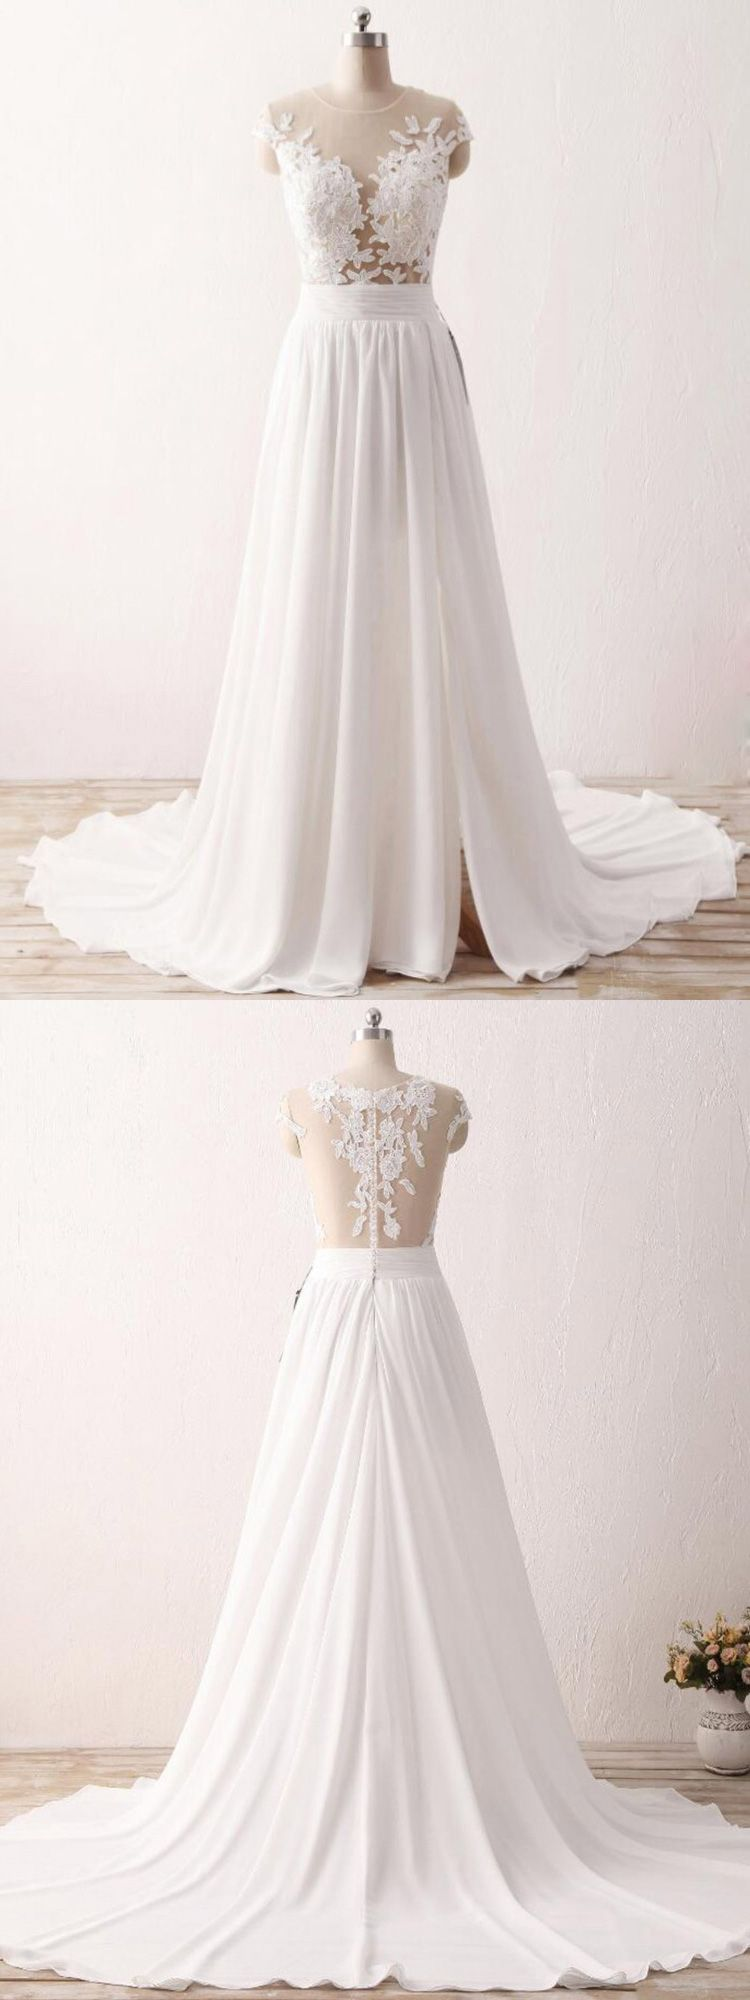 Wedding dress for older bride  Cheap Slit Chiffon Wedding Dress For Older Brides With Delicate